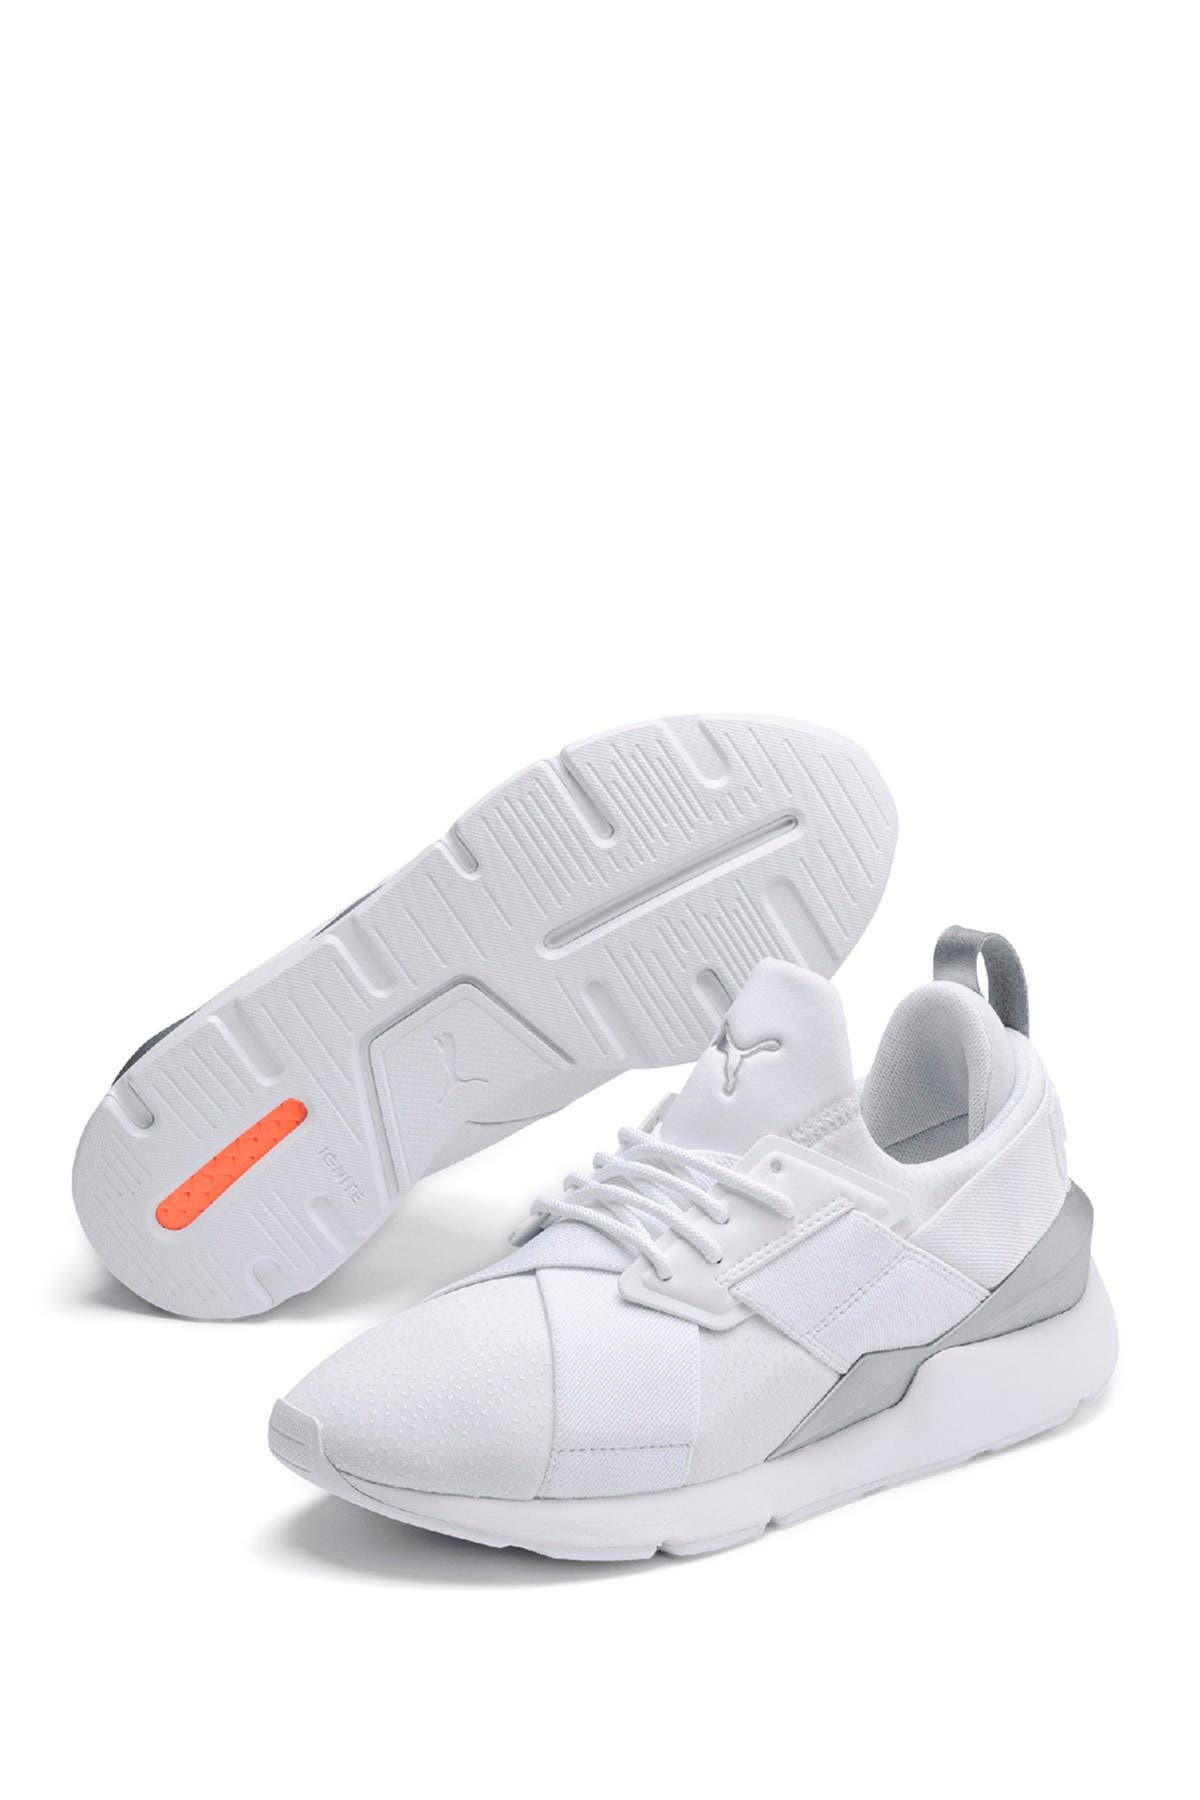 Image of PUMA Muse Perf Sneaker